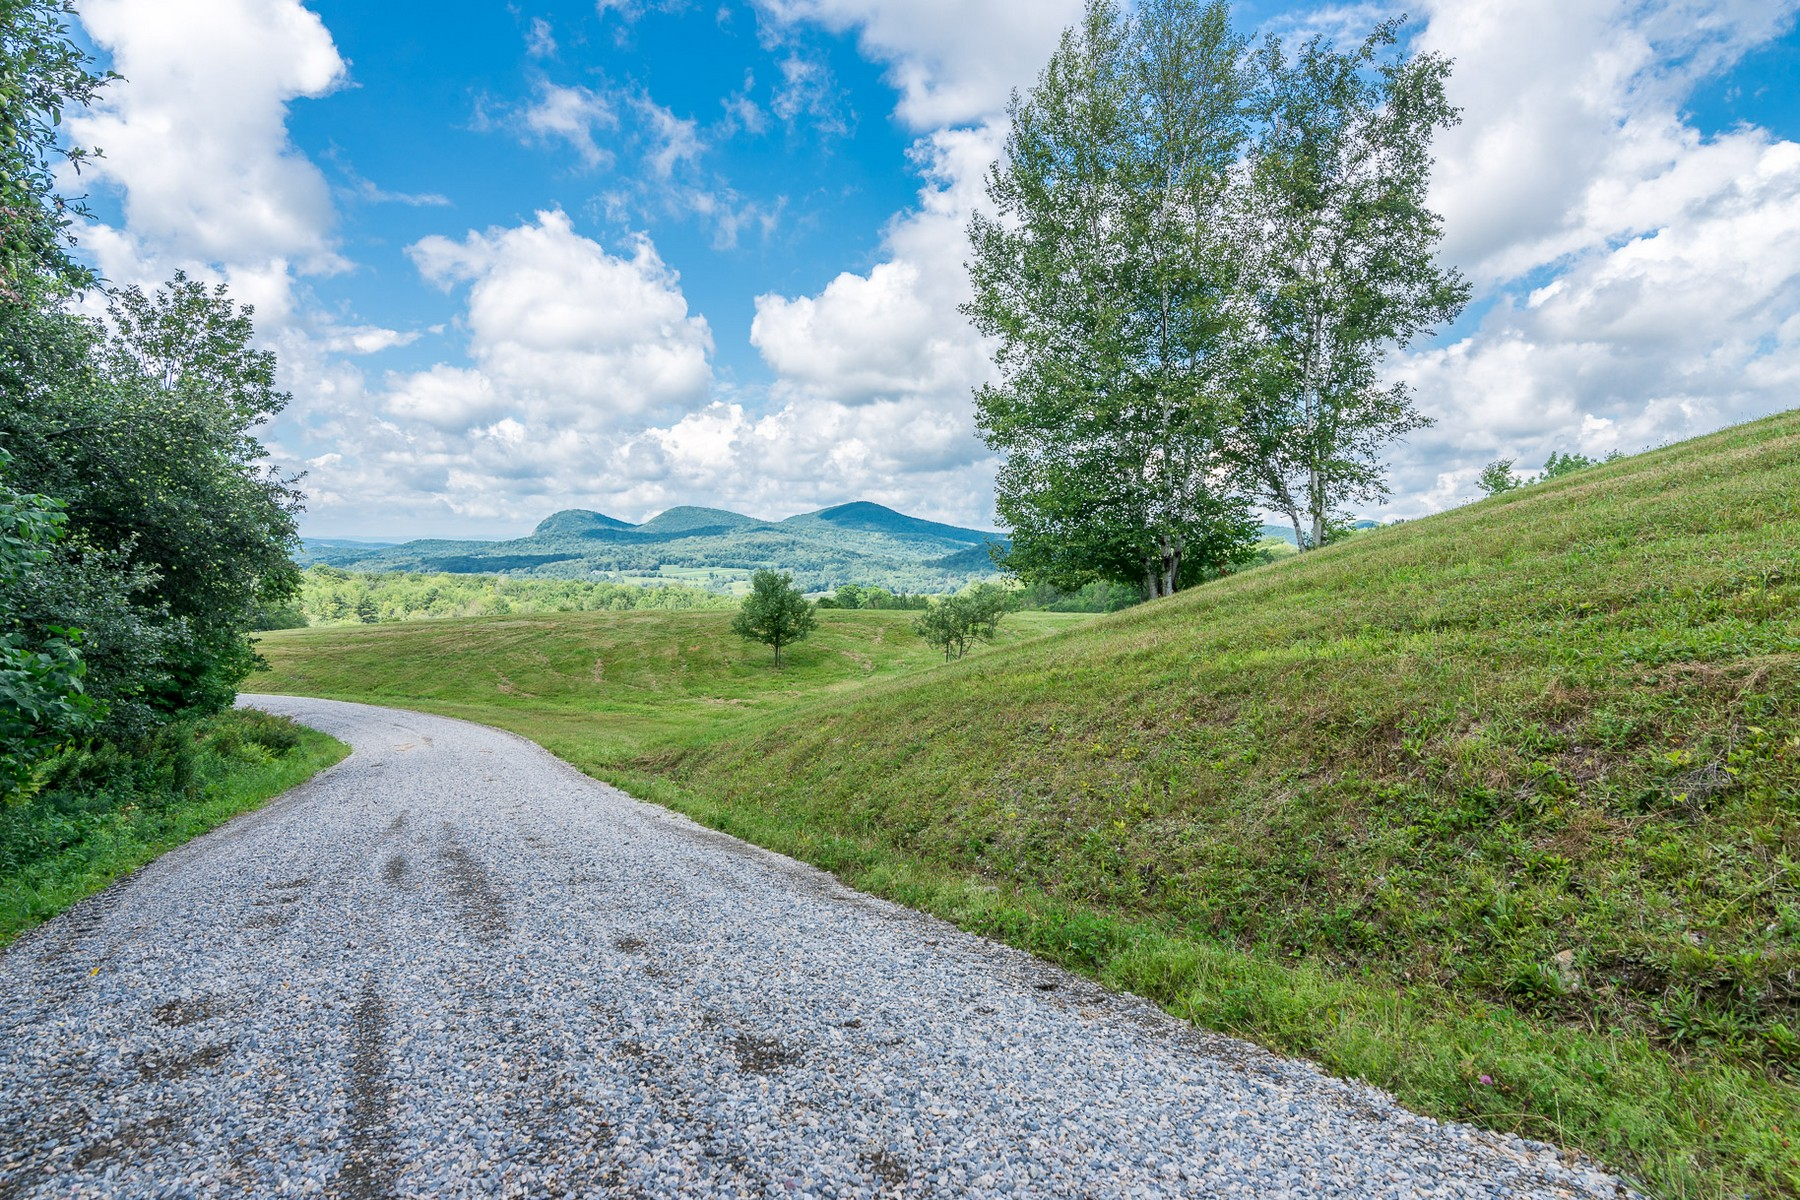 Additional photo for property listing at 1638 Lilly Hill Rd, Danby  Danby, Vermont 05761 United States